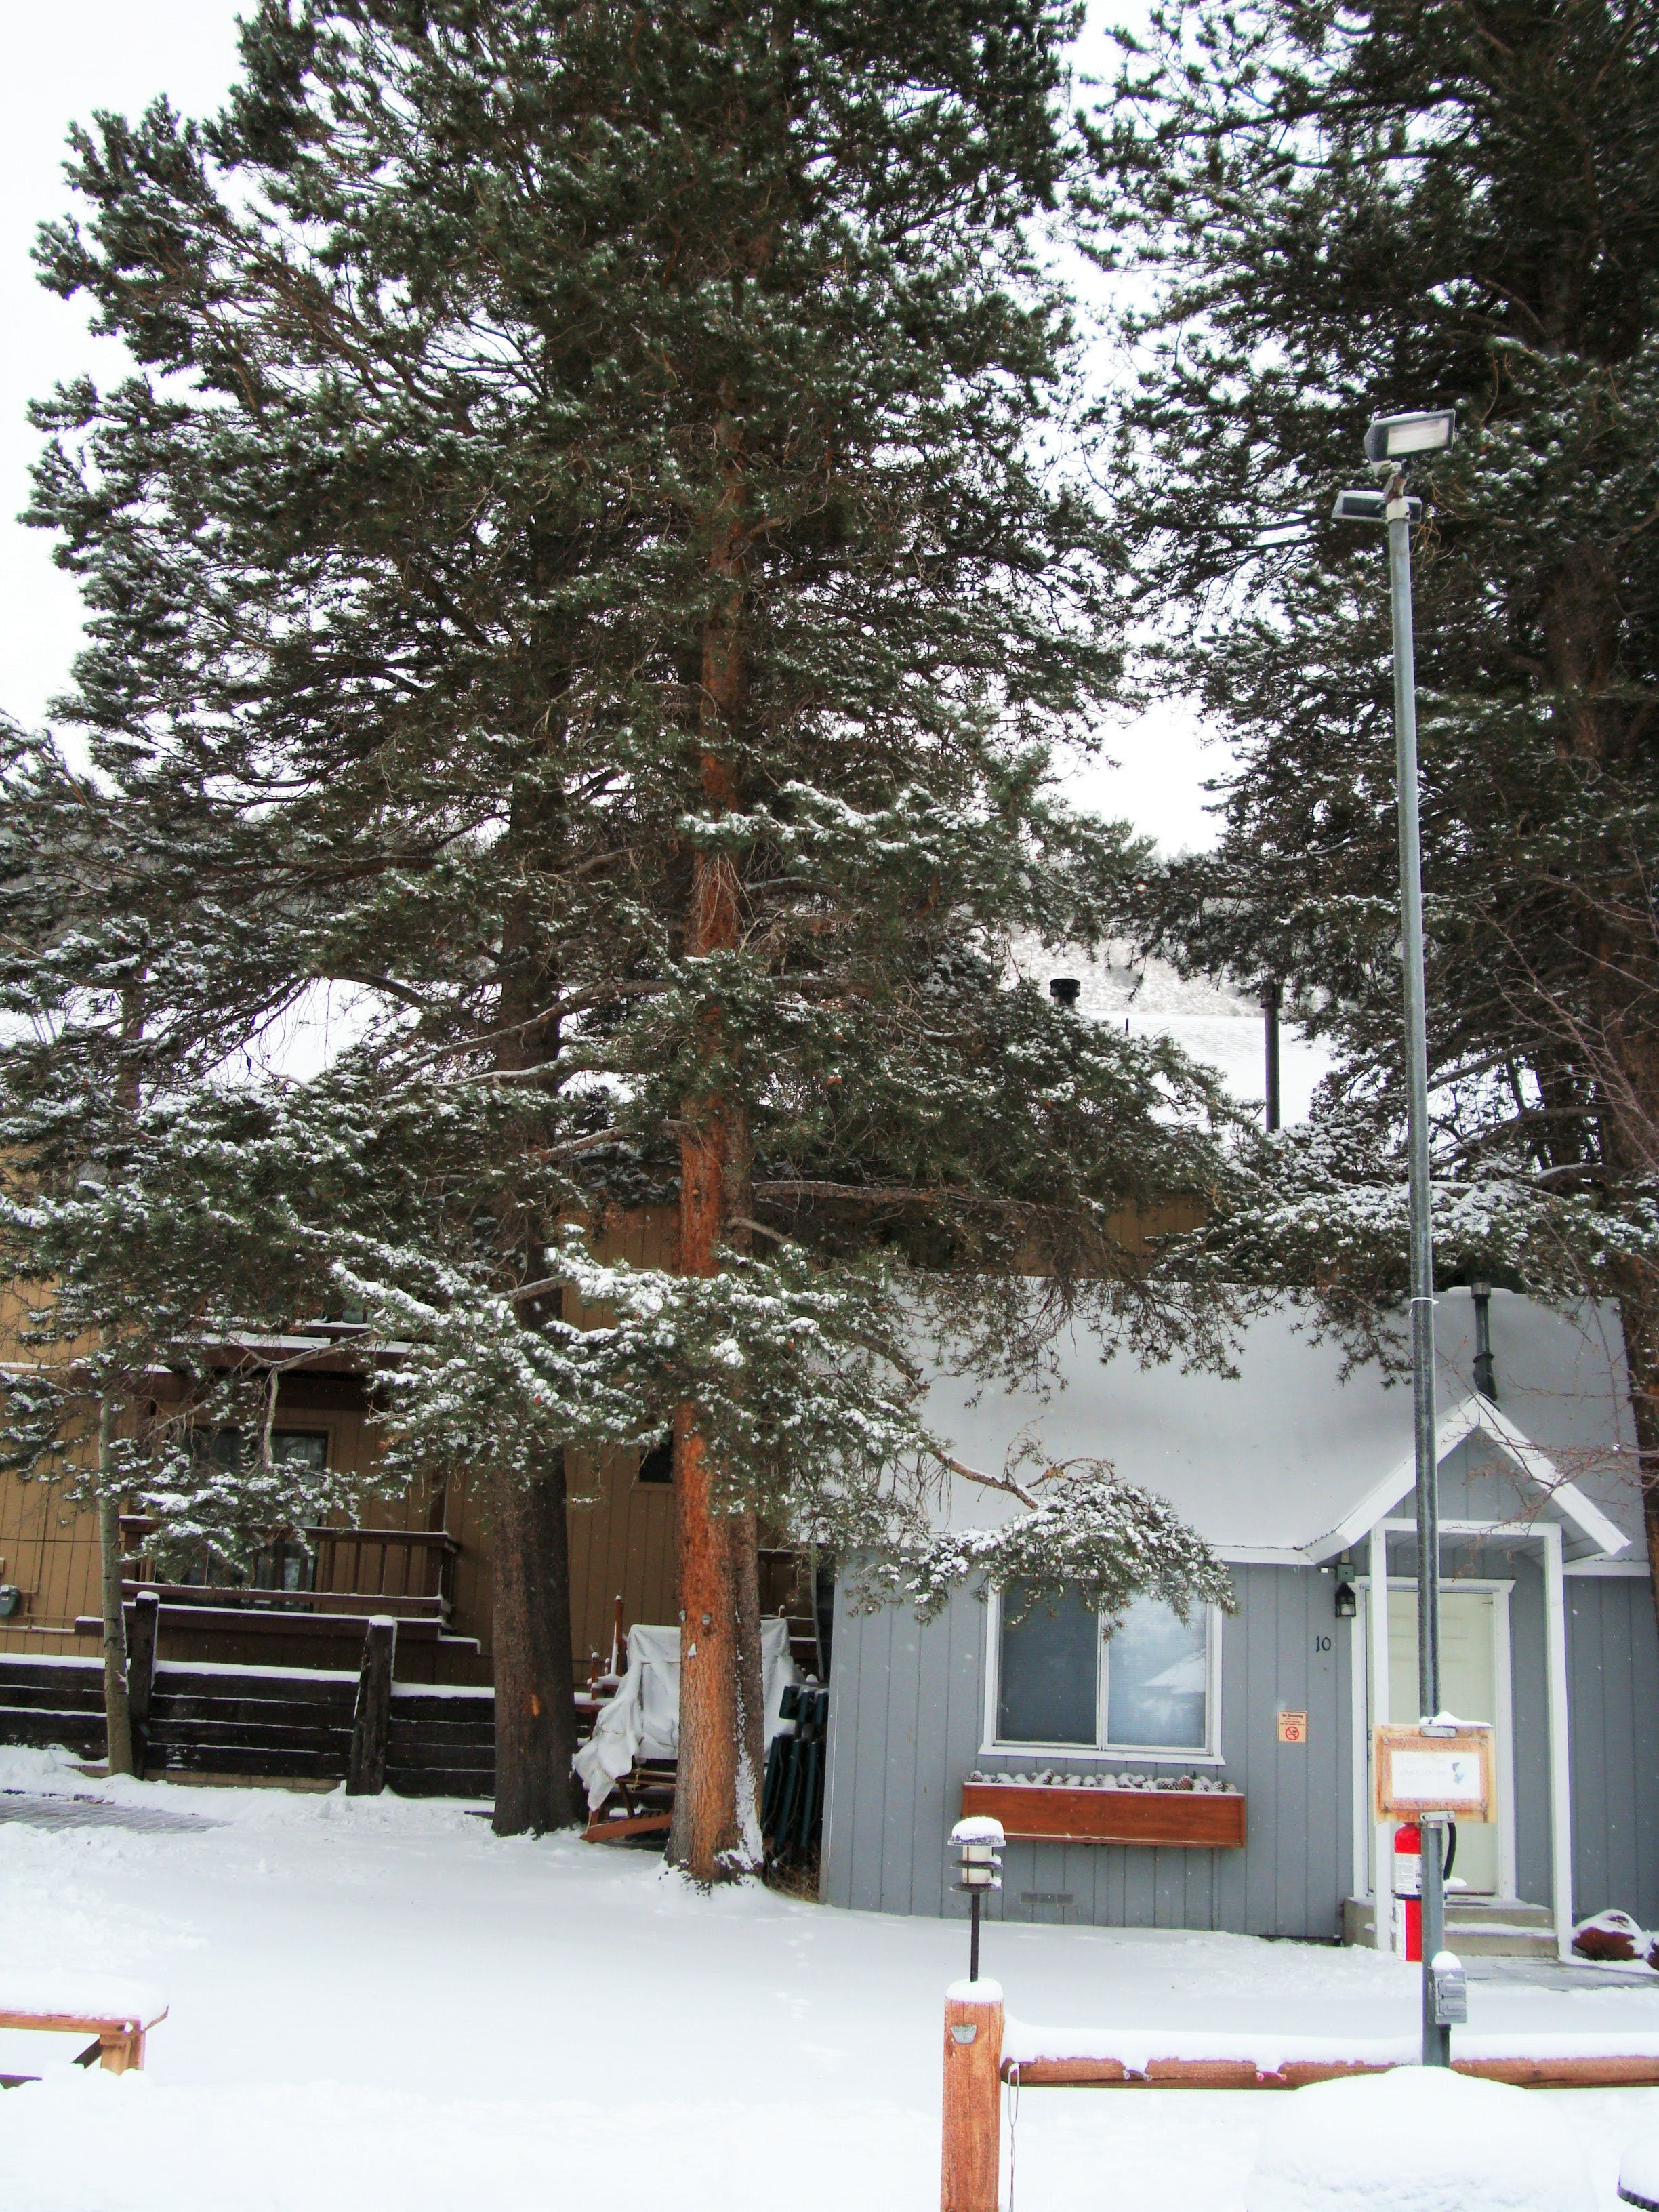 Studio cabin in winter time.